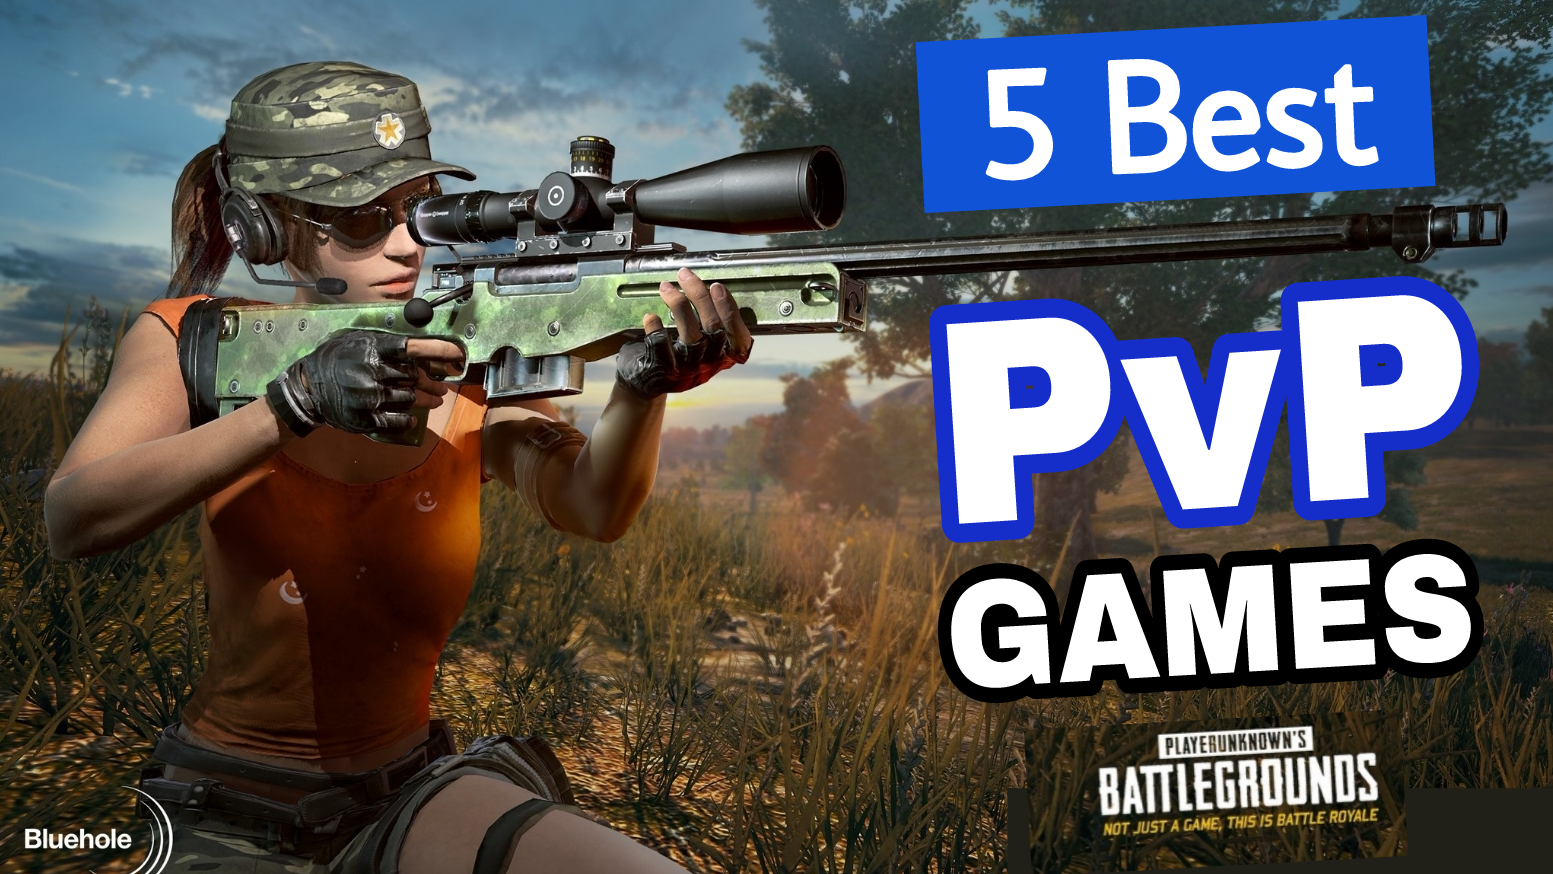 5 Best PvP Games for Android